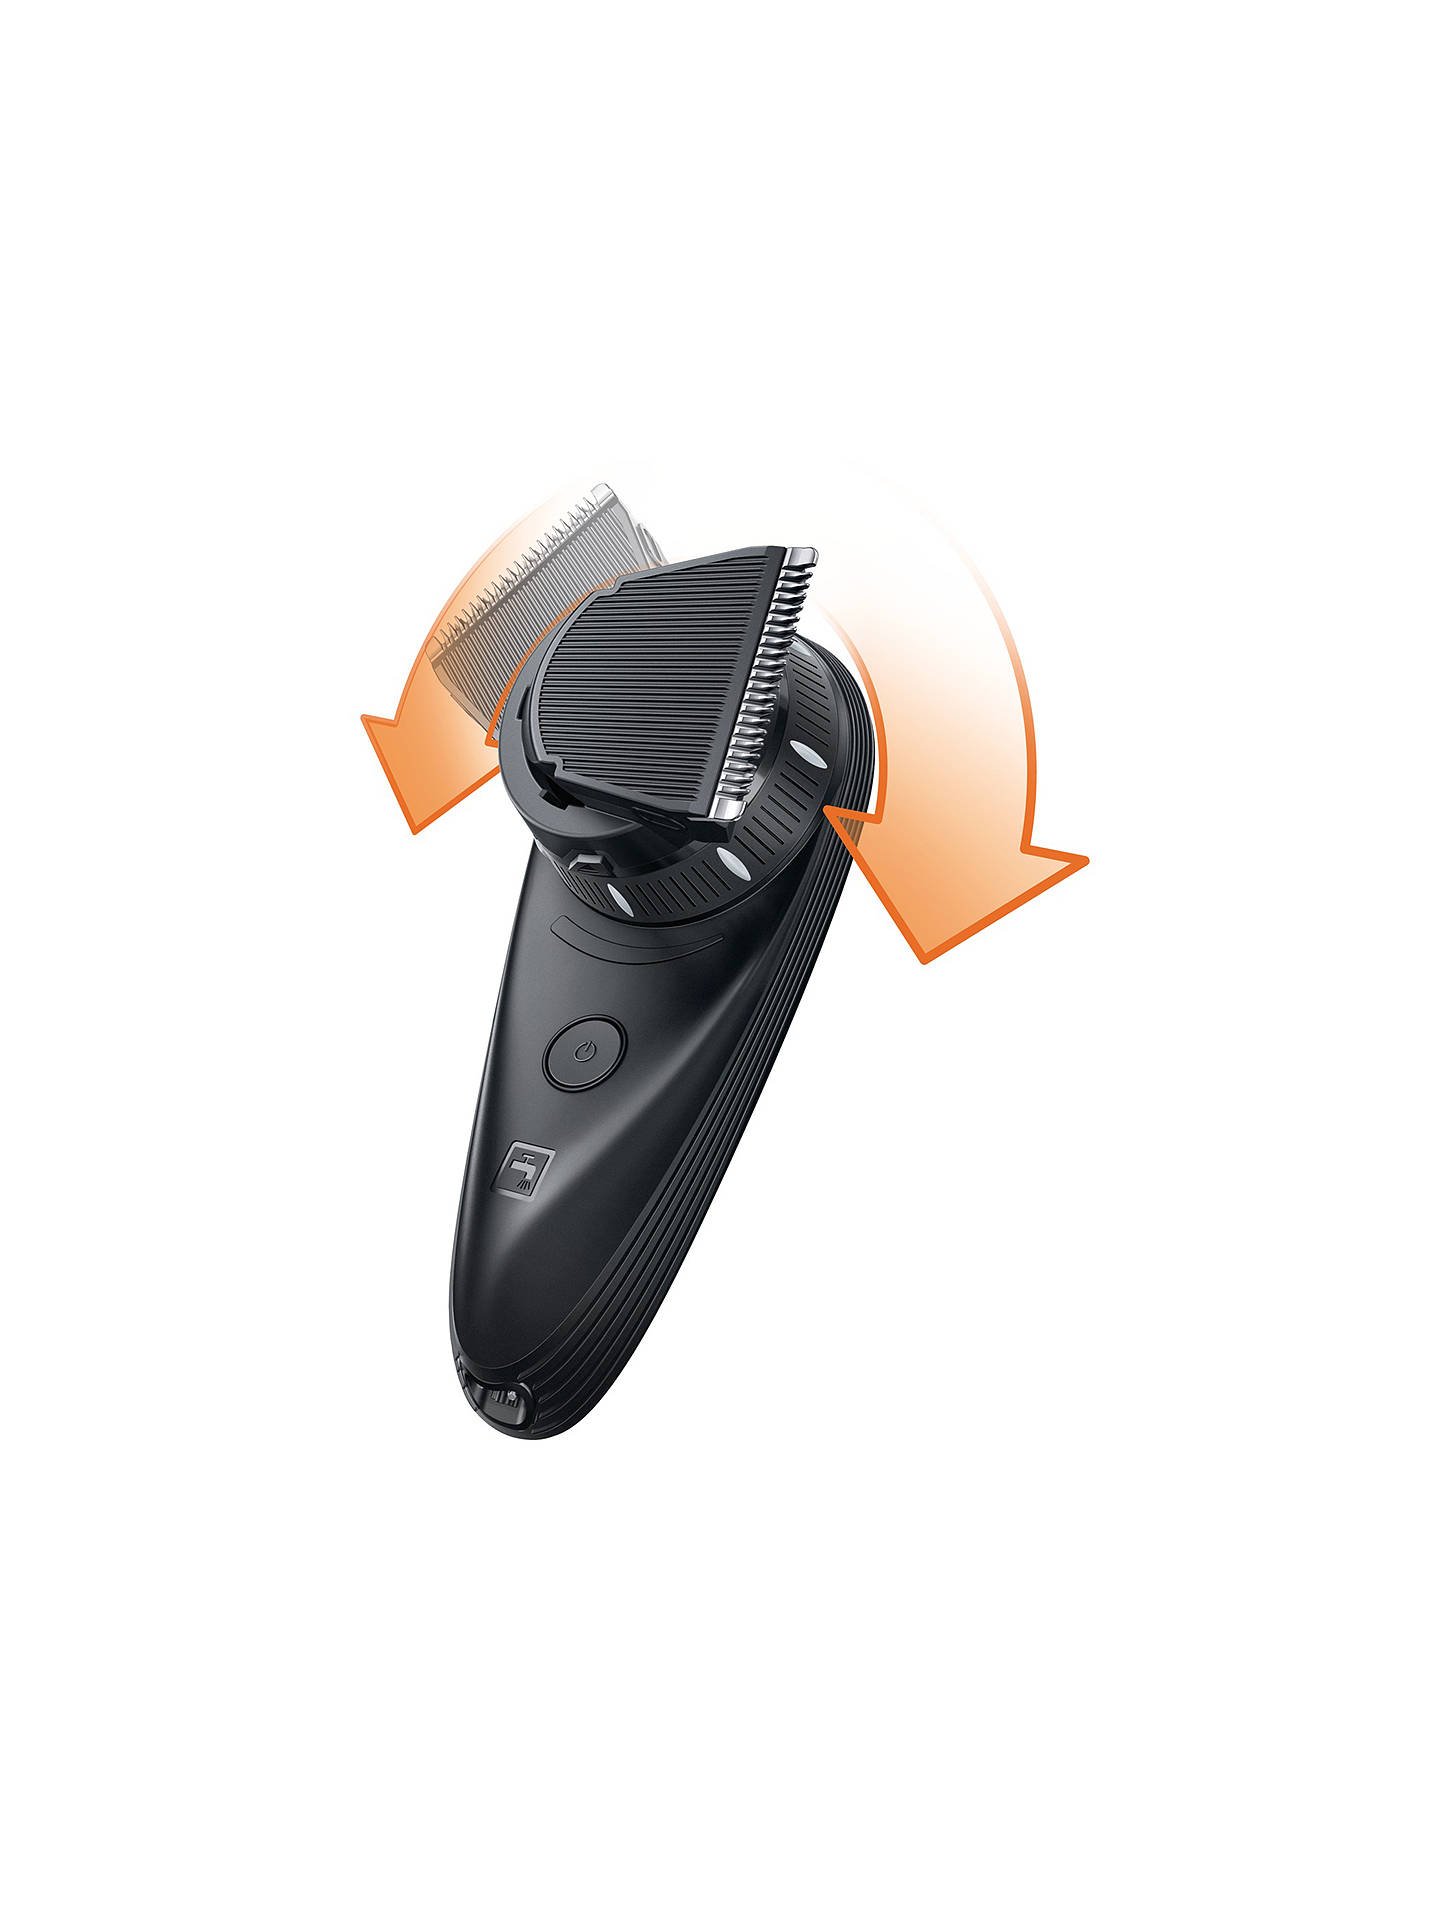 BuyPhilips QC5570/13 Do-It-Yourself Hair Clipper with 180 Degree Rotating Head Online at johnlewis.com